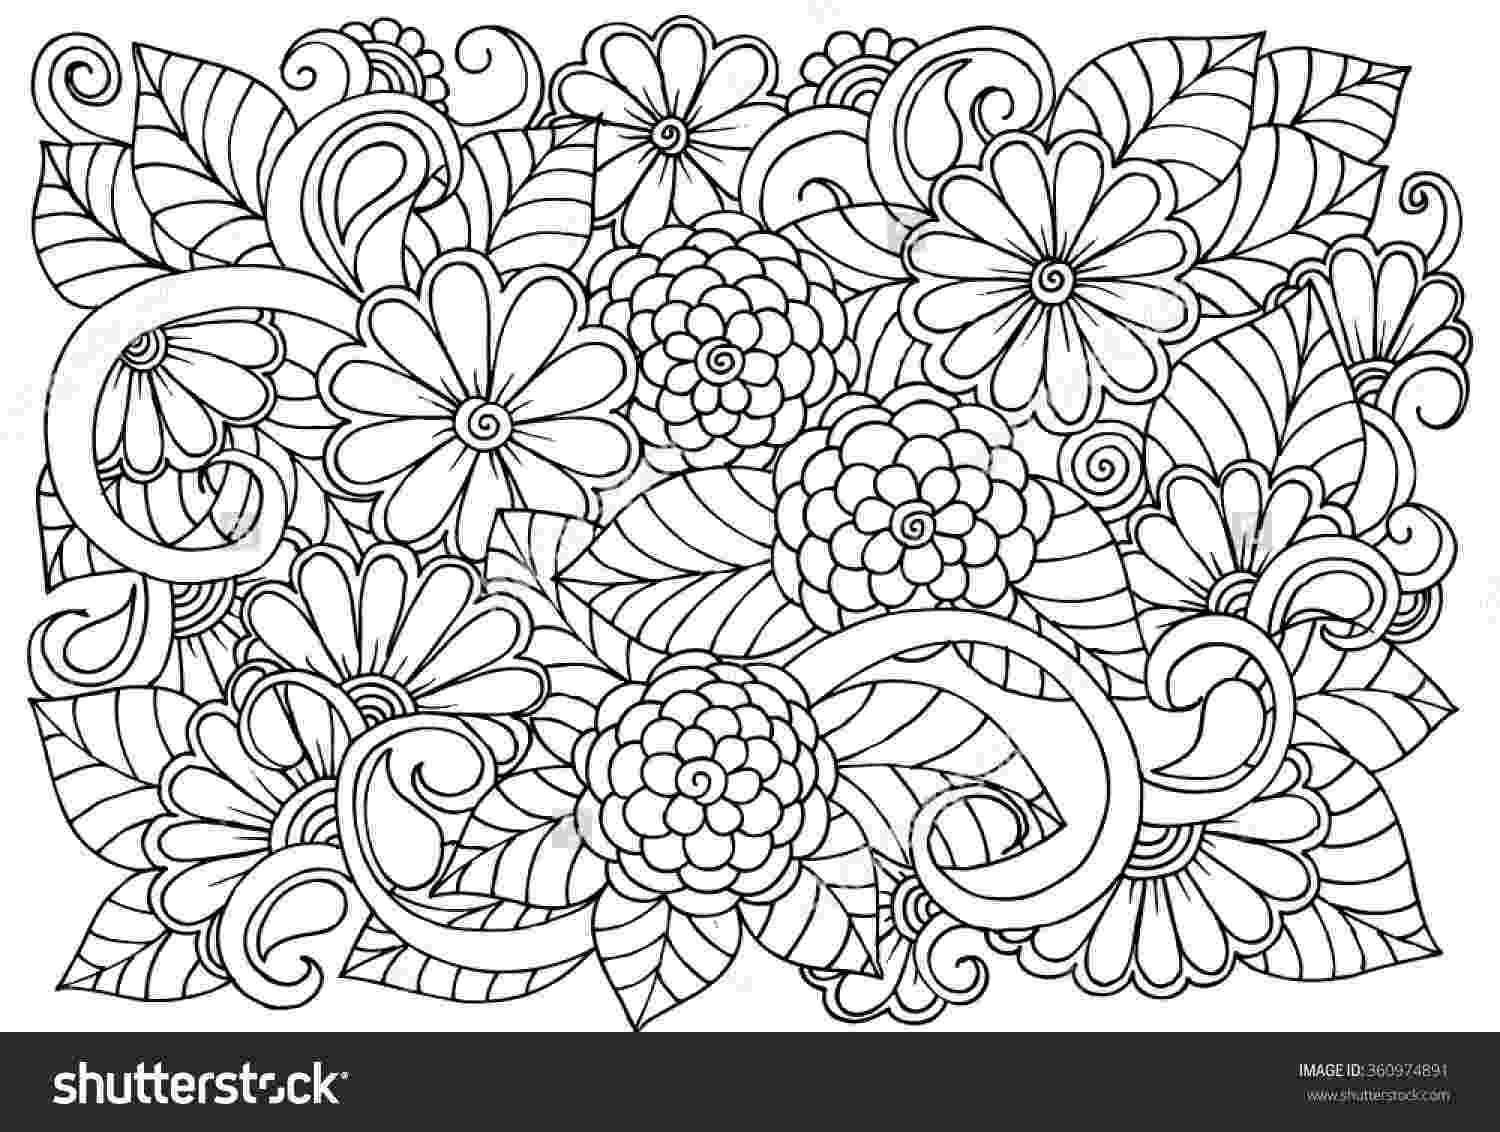 flower patterns coloring book black and white flower pattern for coloring doodle floral coloring patterns book flower